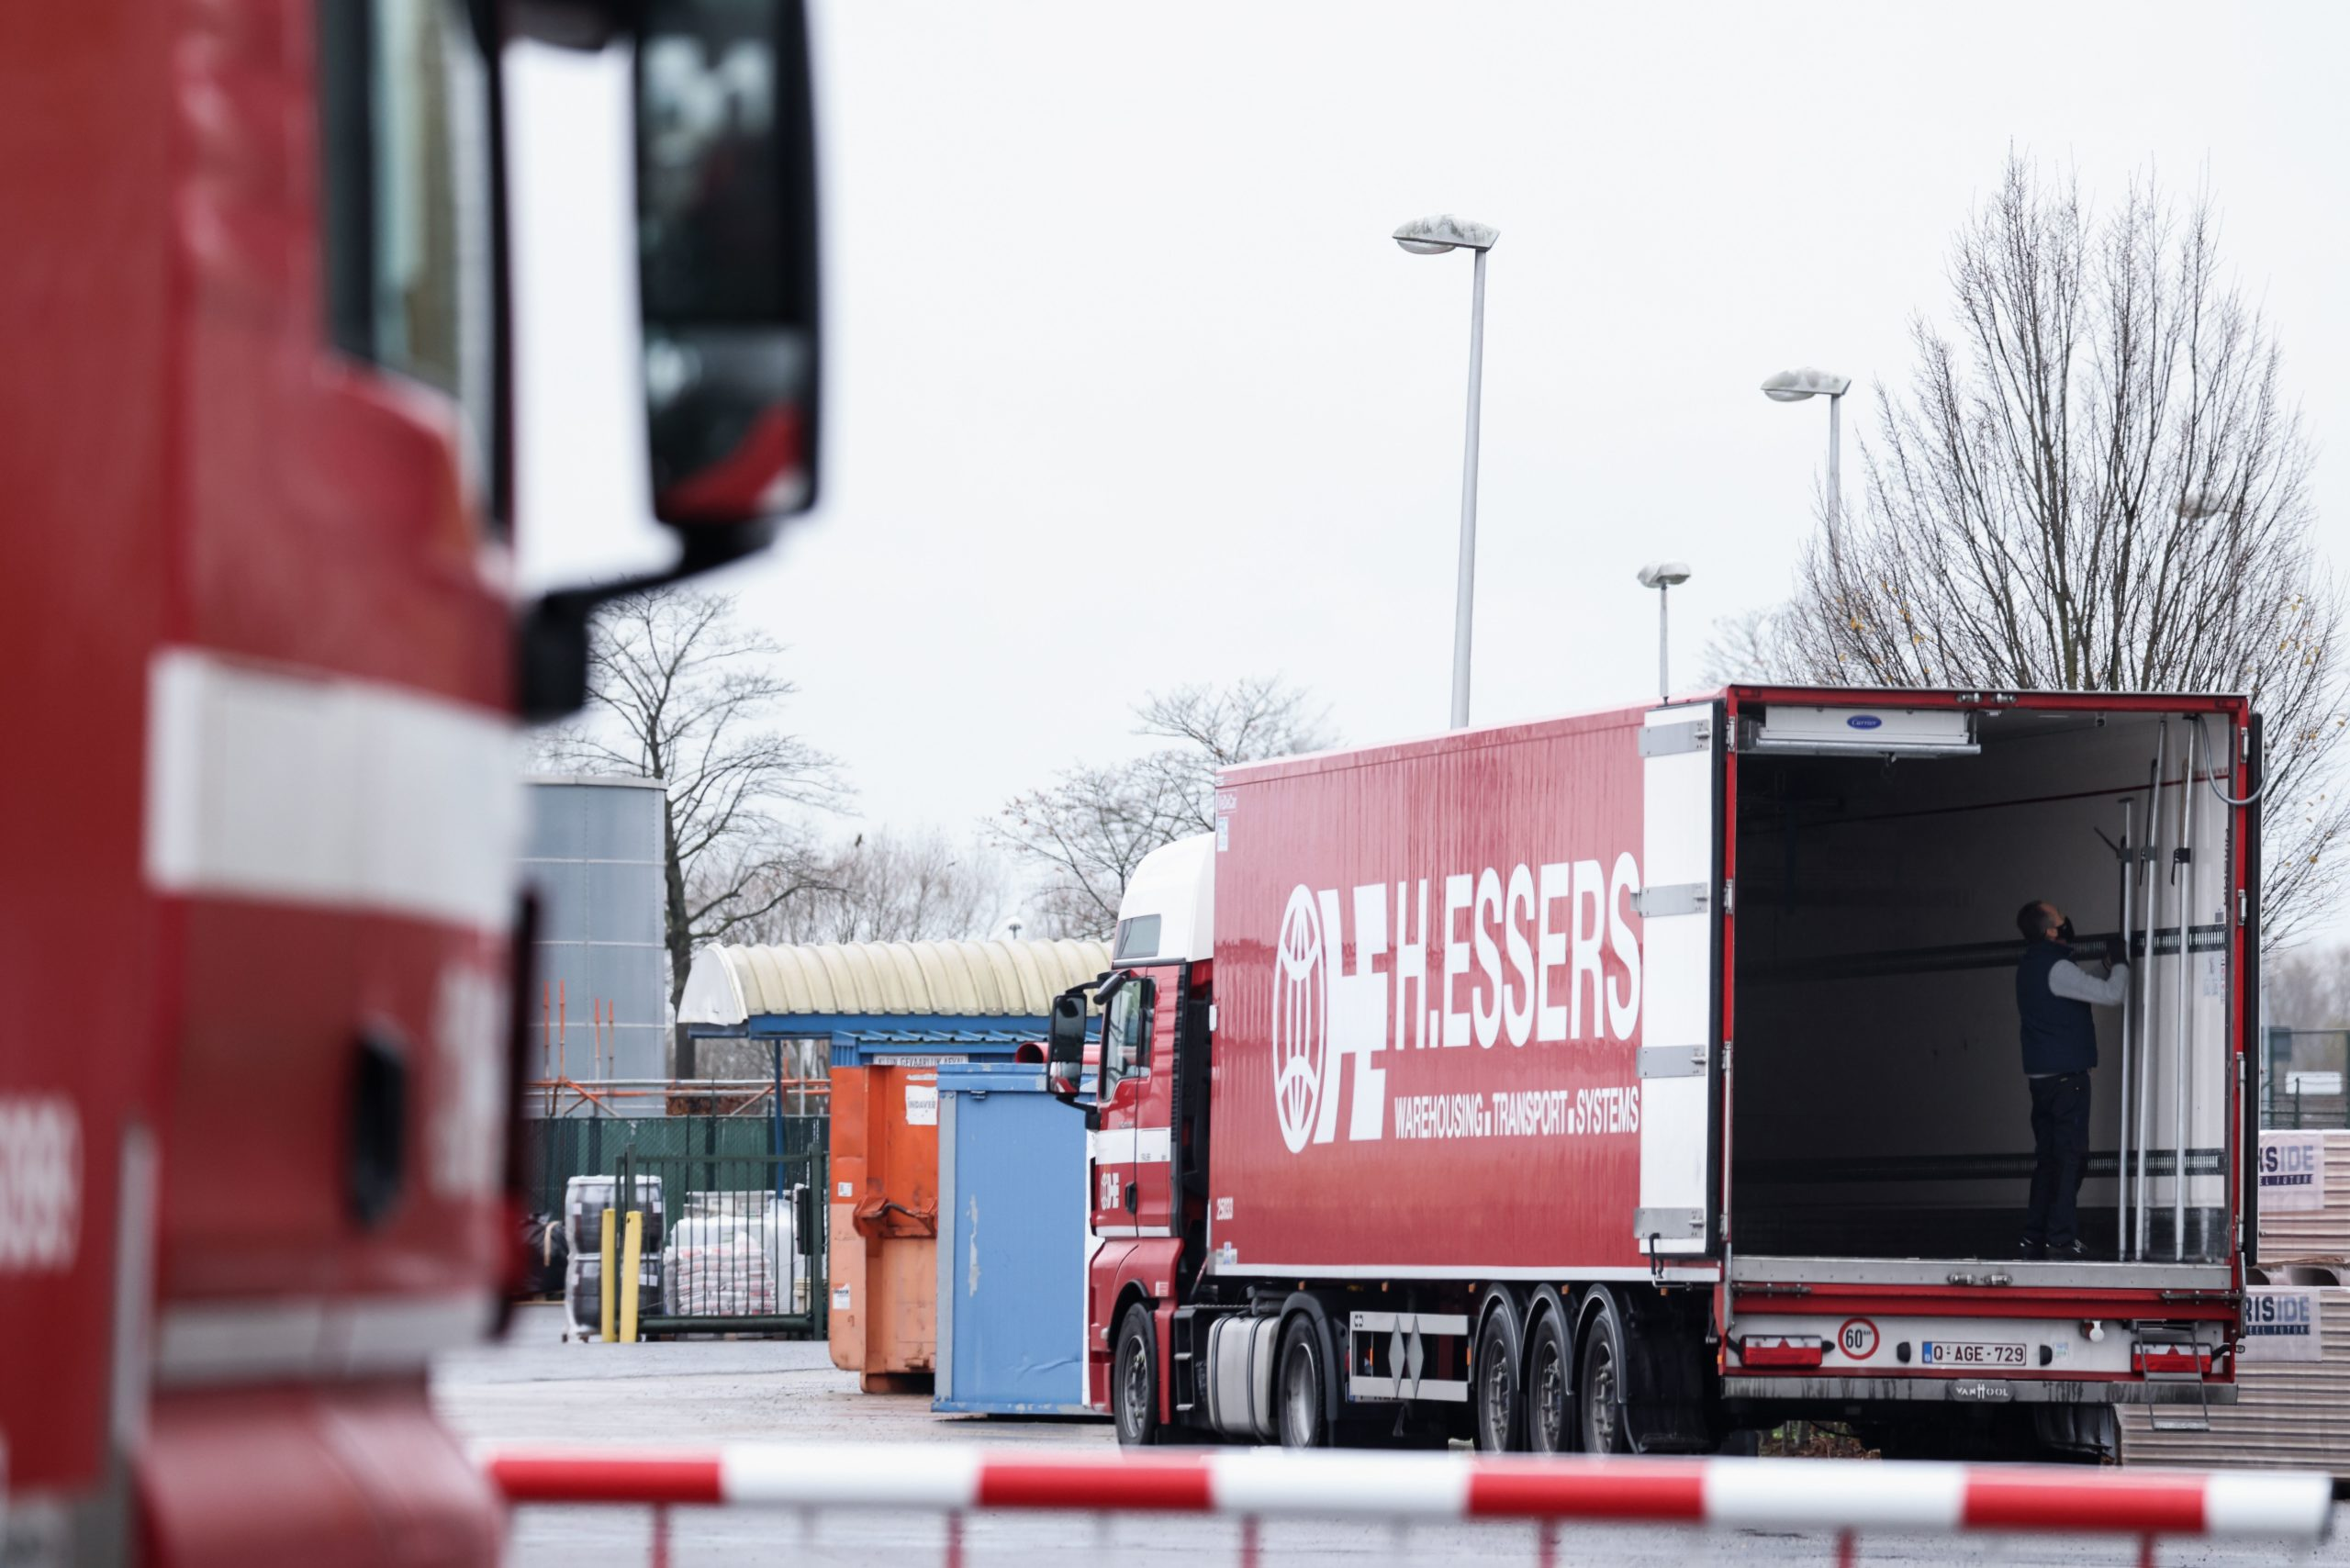 Trucks are loaded at a Pfizer factory in Puurs, Belgium where coronavirus vaccines are being produced for the United Kingdom on Thursday. (Kenzo Tribouillard/AFP via Getty Images)